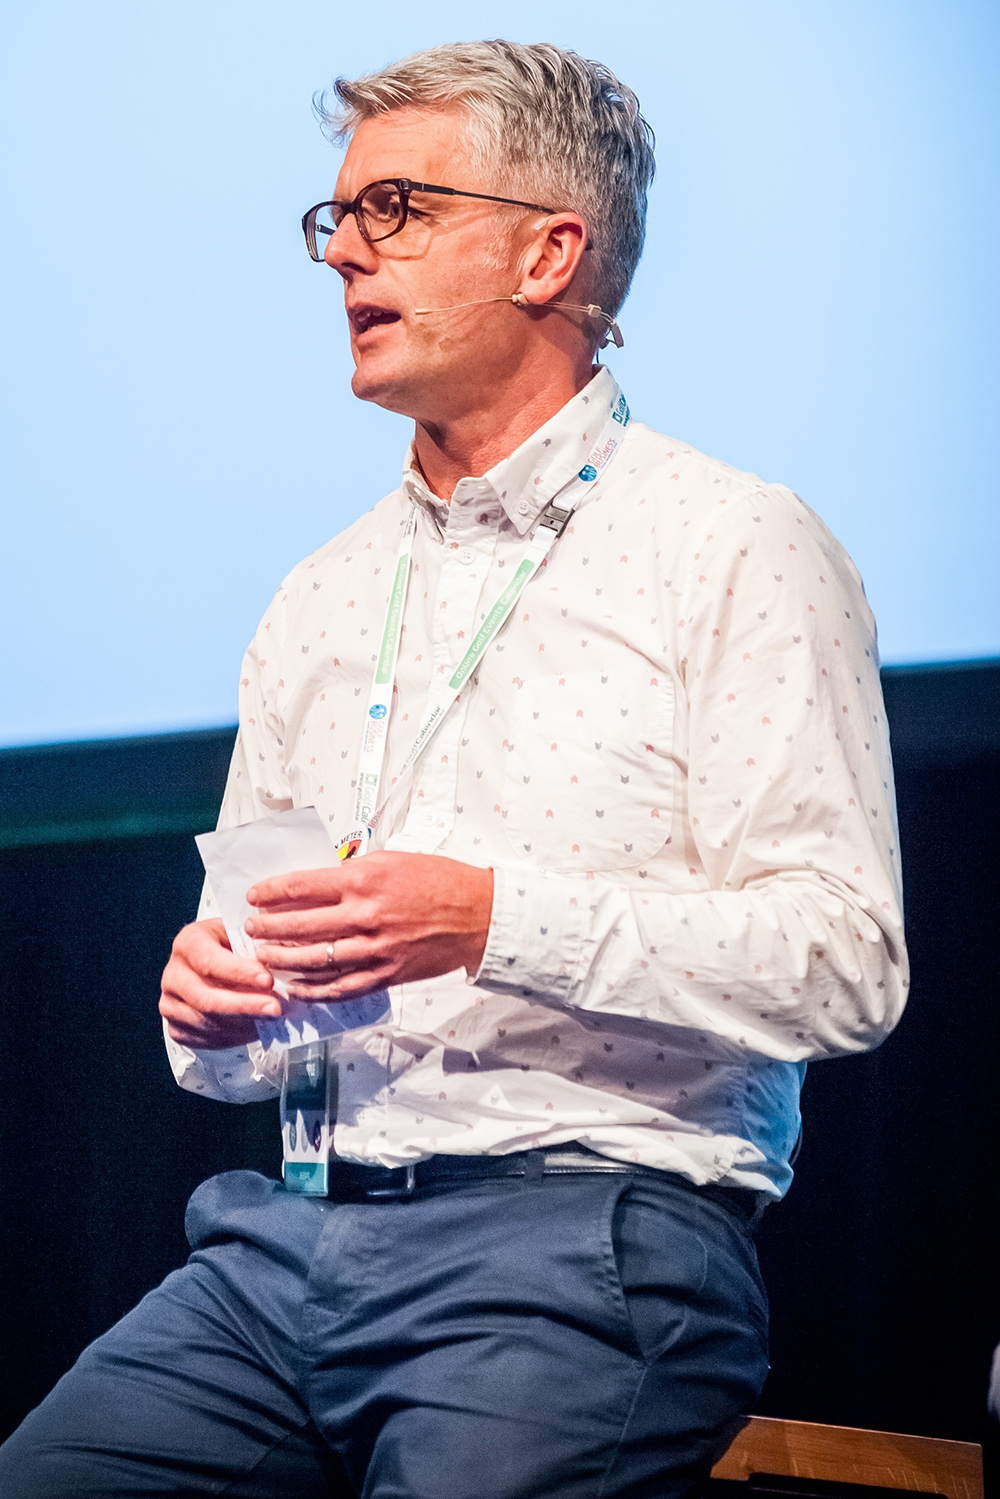 Guy Chapple, Founder and Director, WellPlayed.